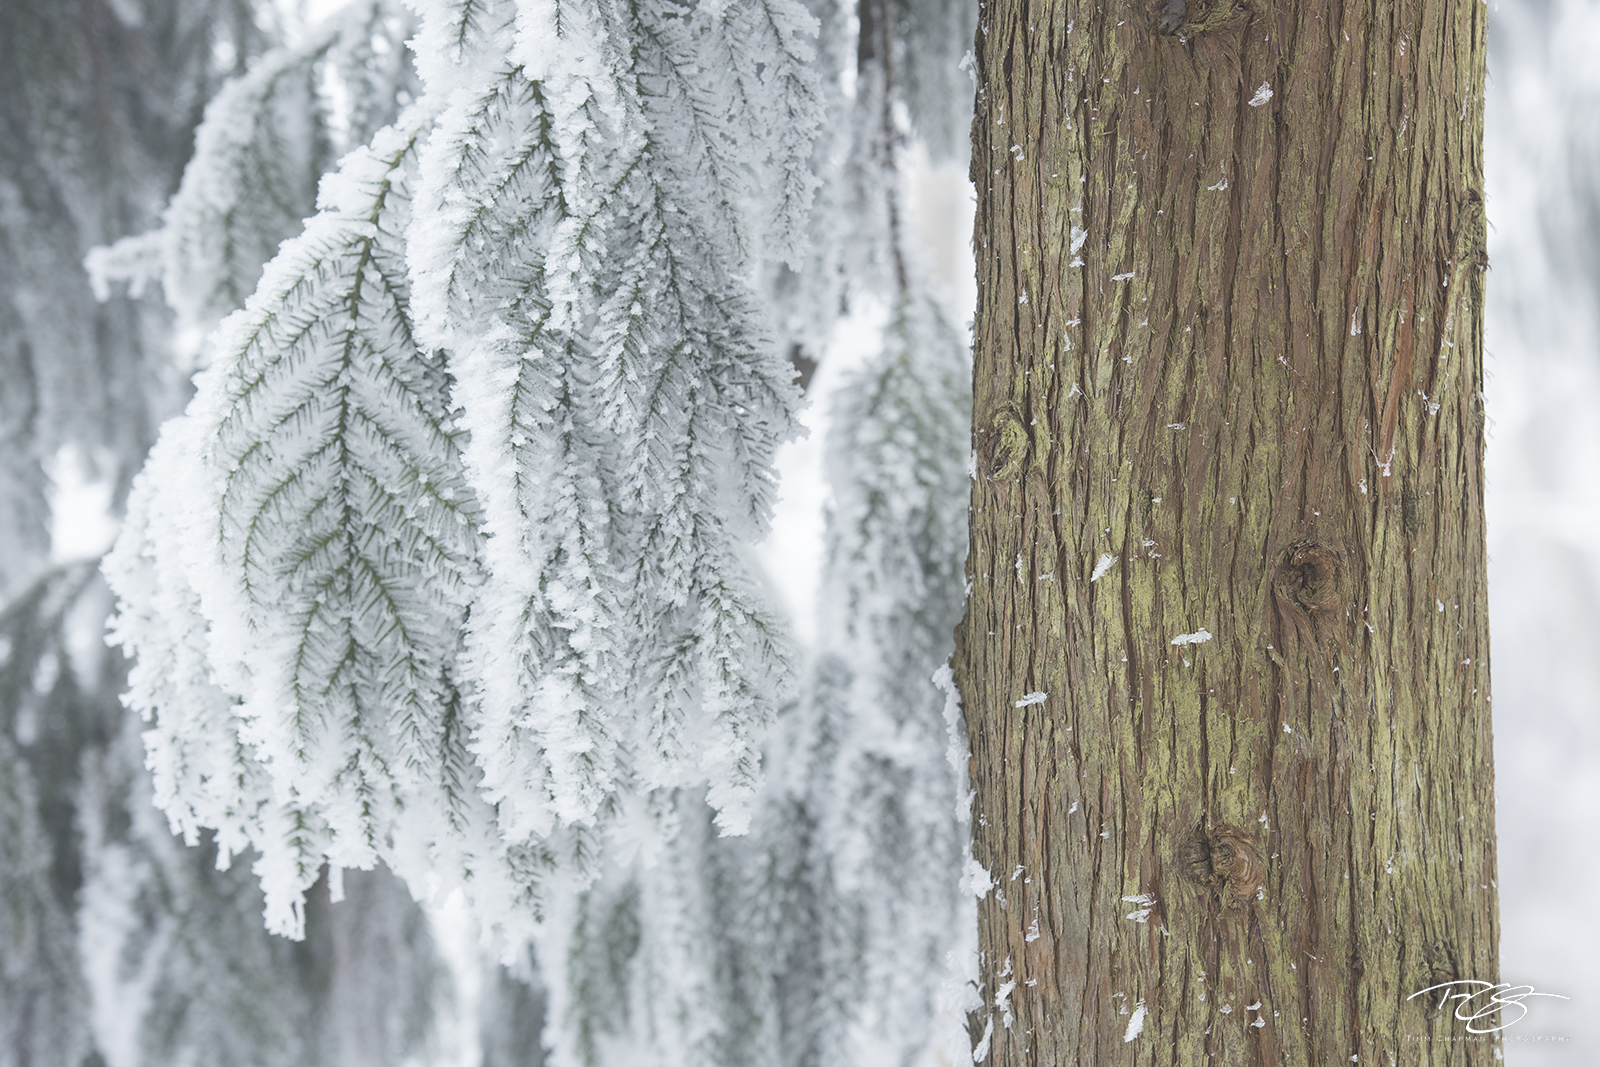 dawn redwood, frost, frosty, snow, winter, wintry, sage, green, tree, ice, icy, wulingyuan, zhangjiajie, china, frosted redwood, photo